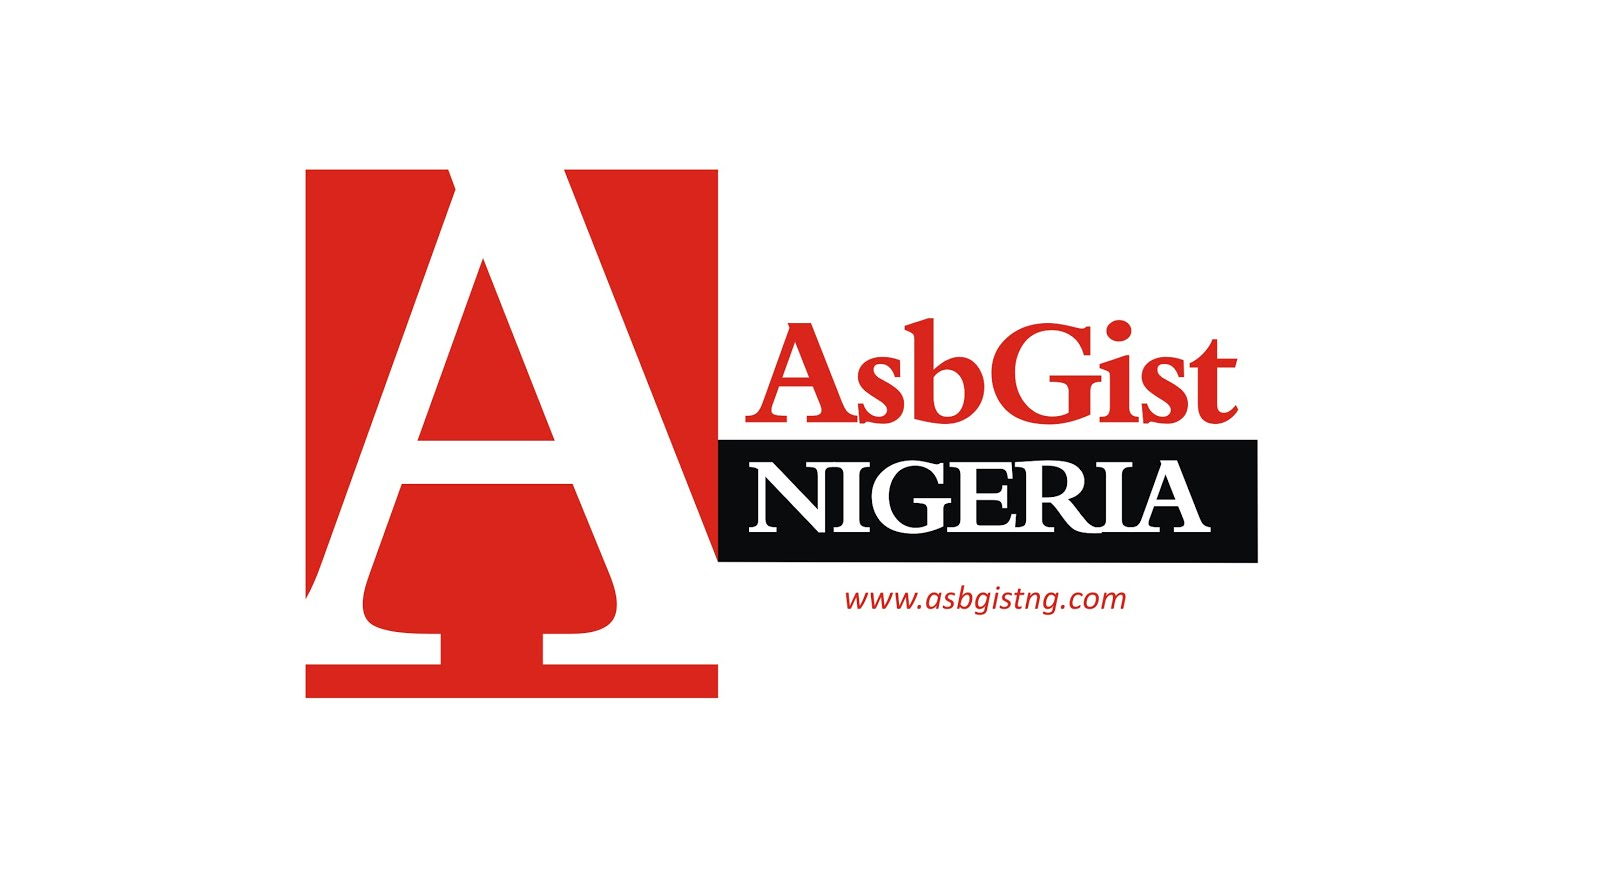 AsbGist Nigeria: Breaking News, Entertainment, Politics, Sport, Lifestyle, World News